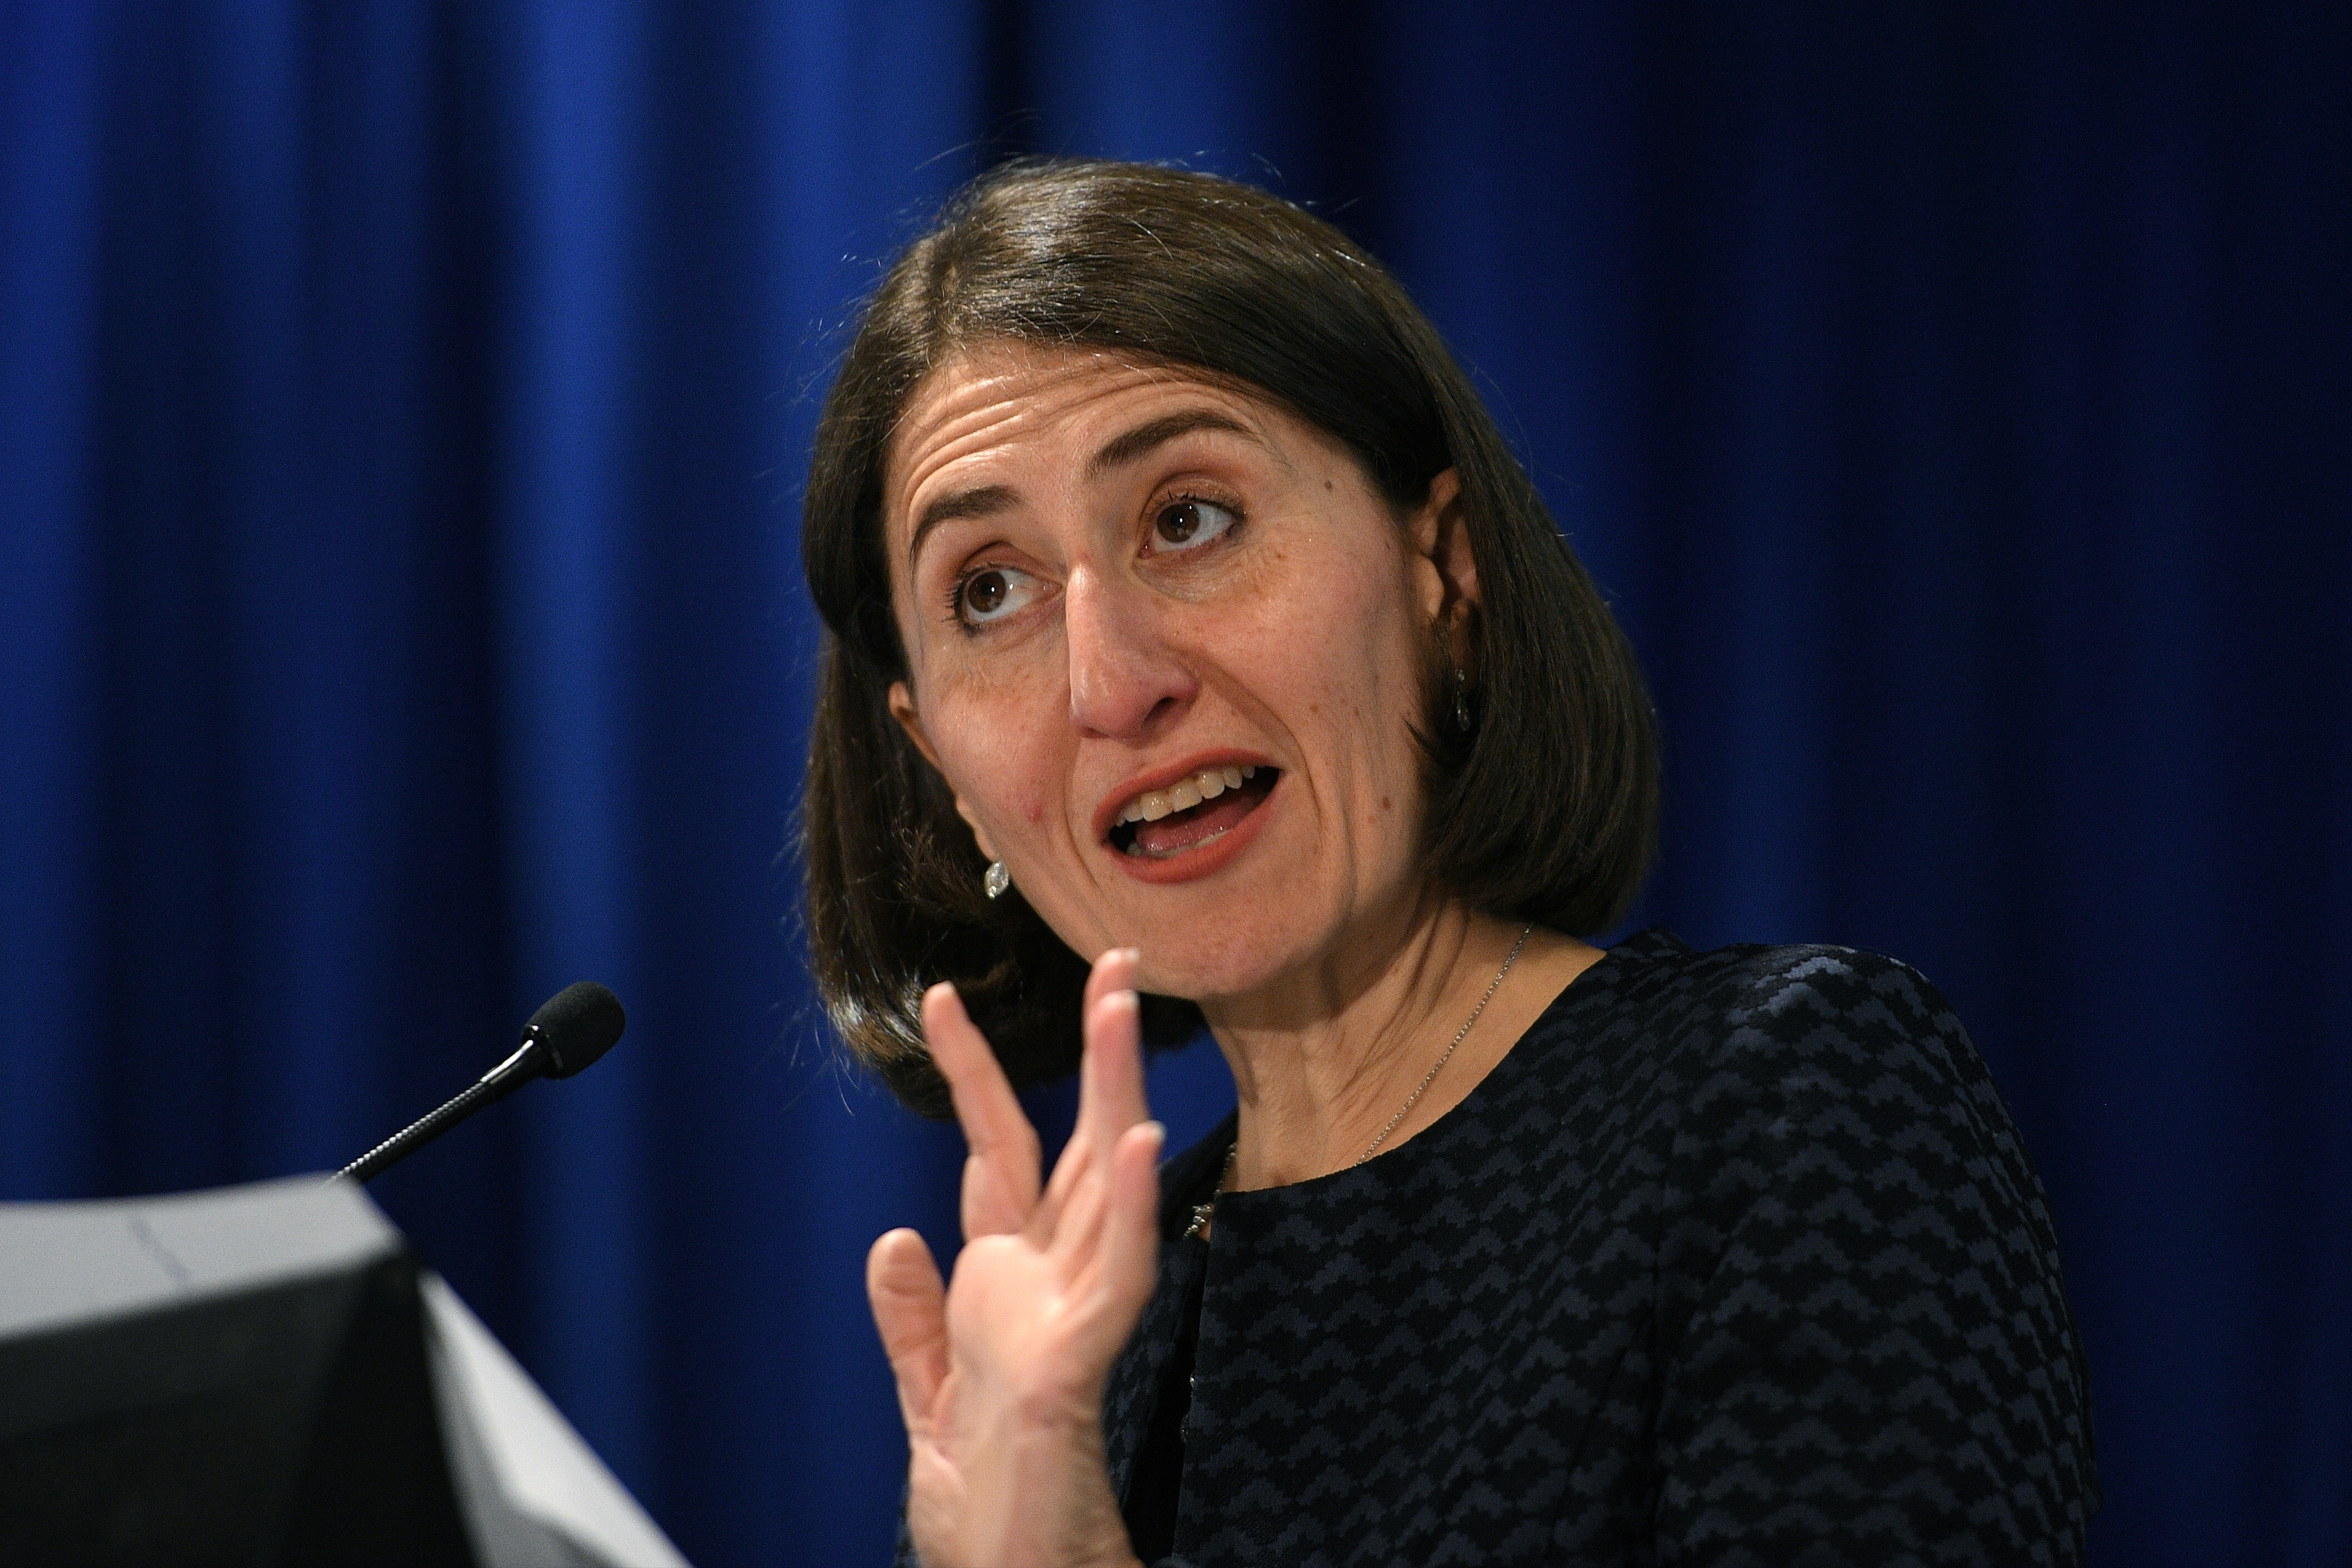 Premier Gladys Berijiklian backed down from forced mergers earlier this year. (AAP)